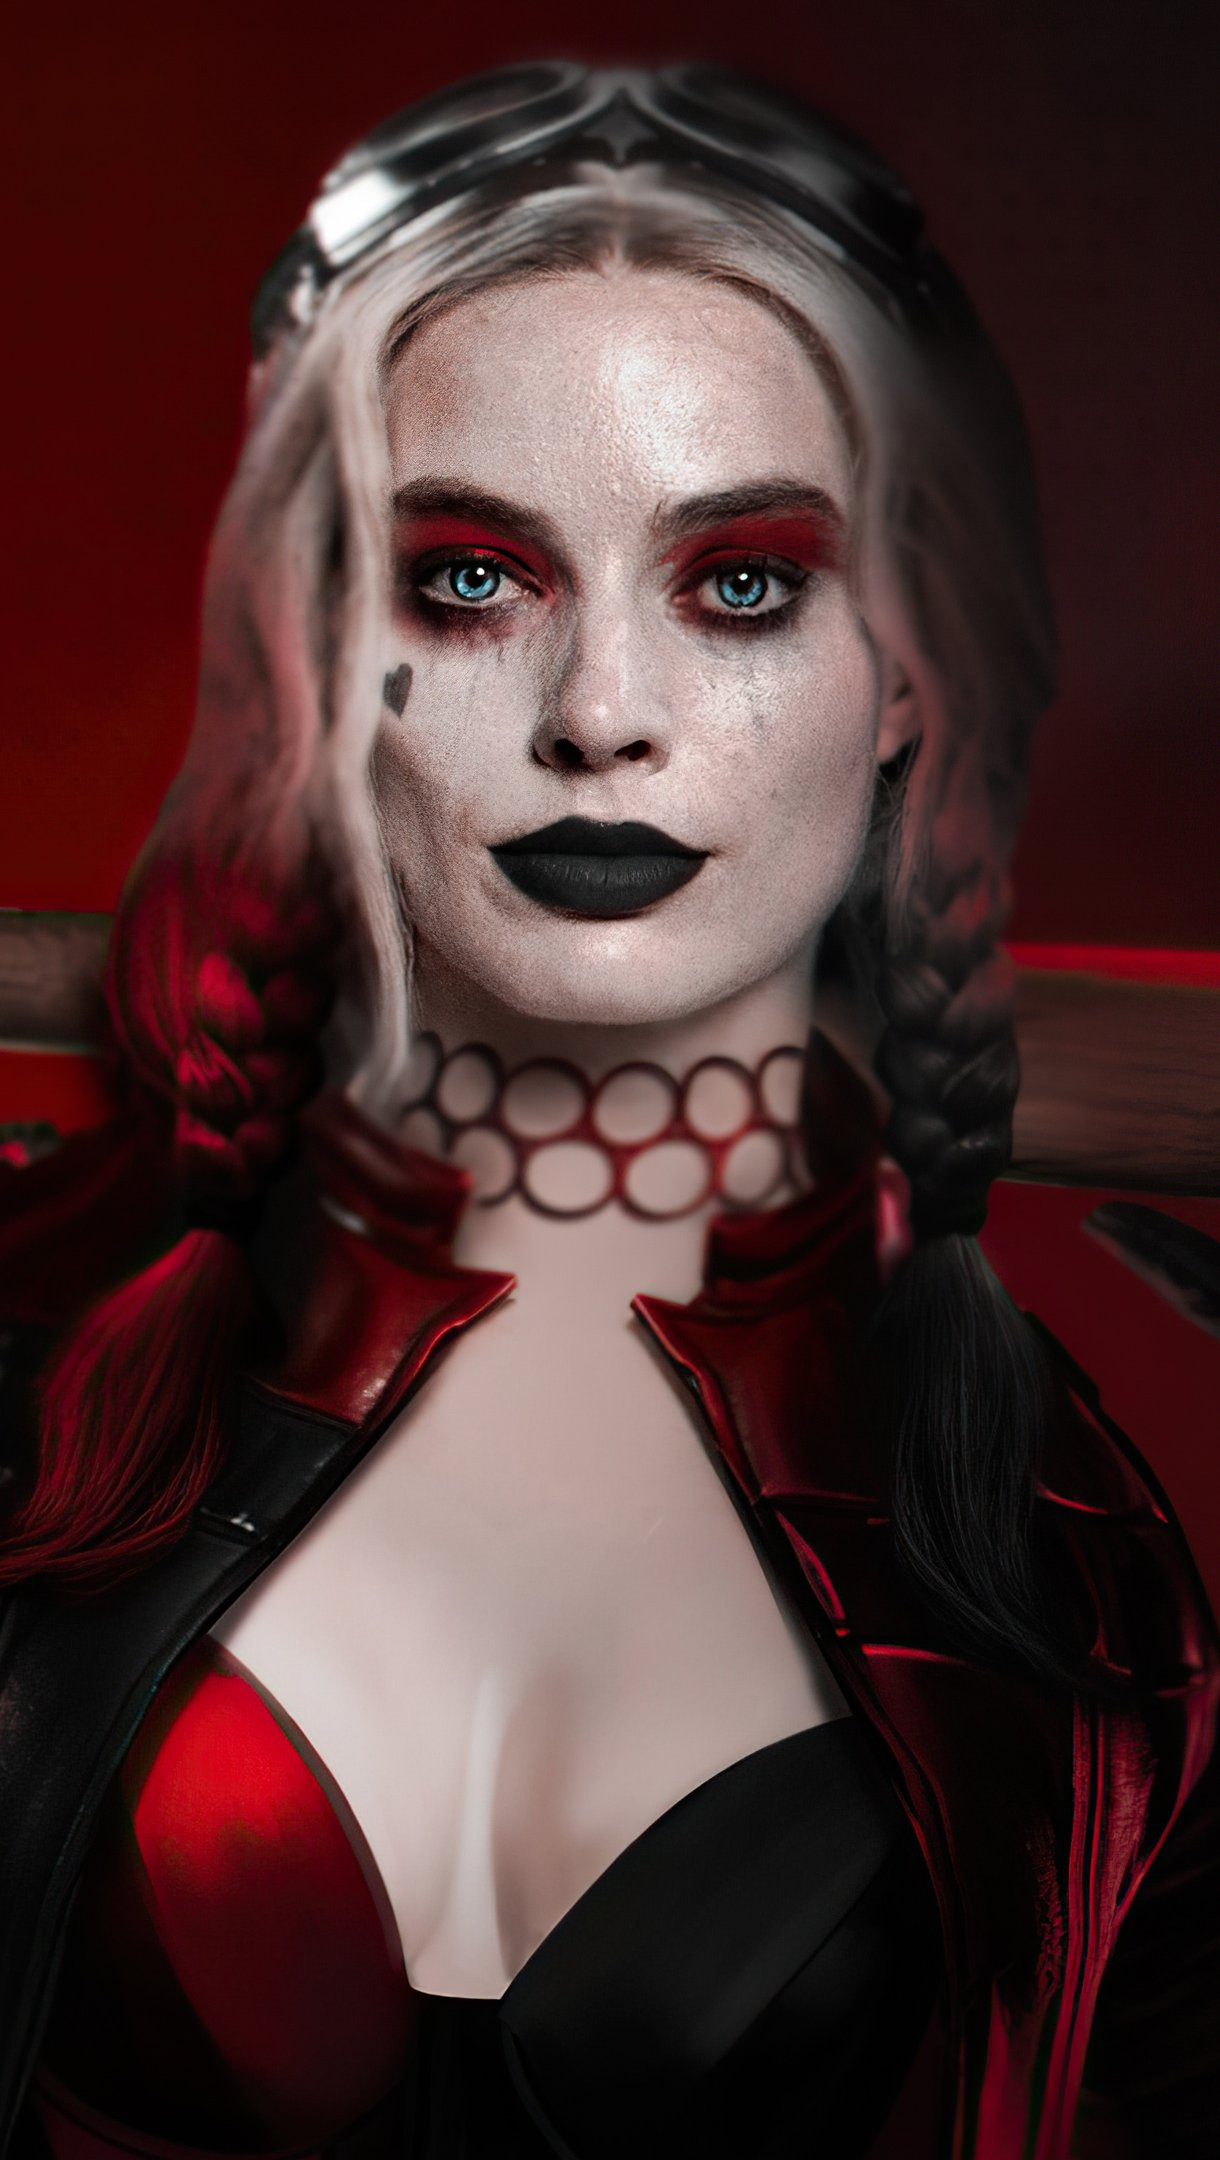 Wallpaper Harley Quinn from Suicide Squad Vertical